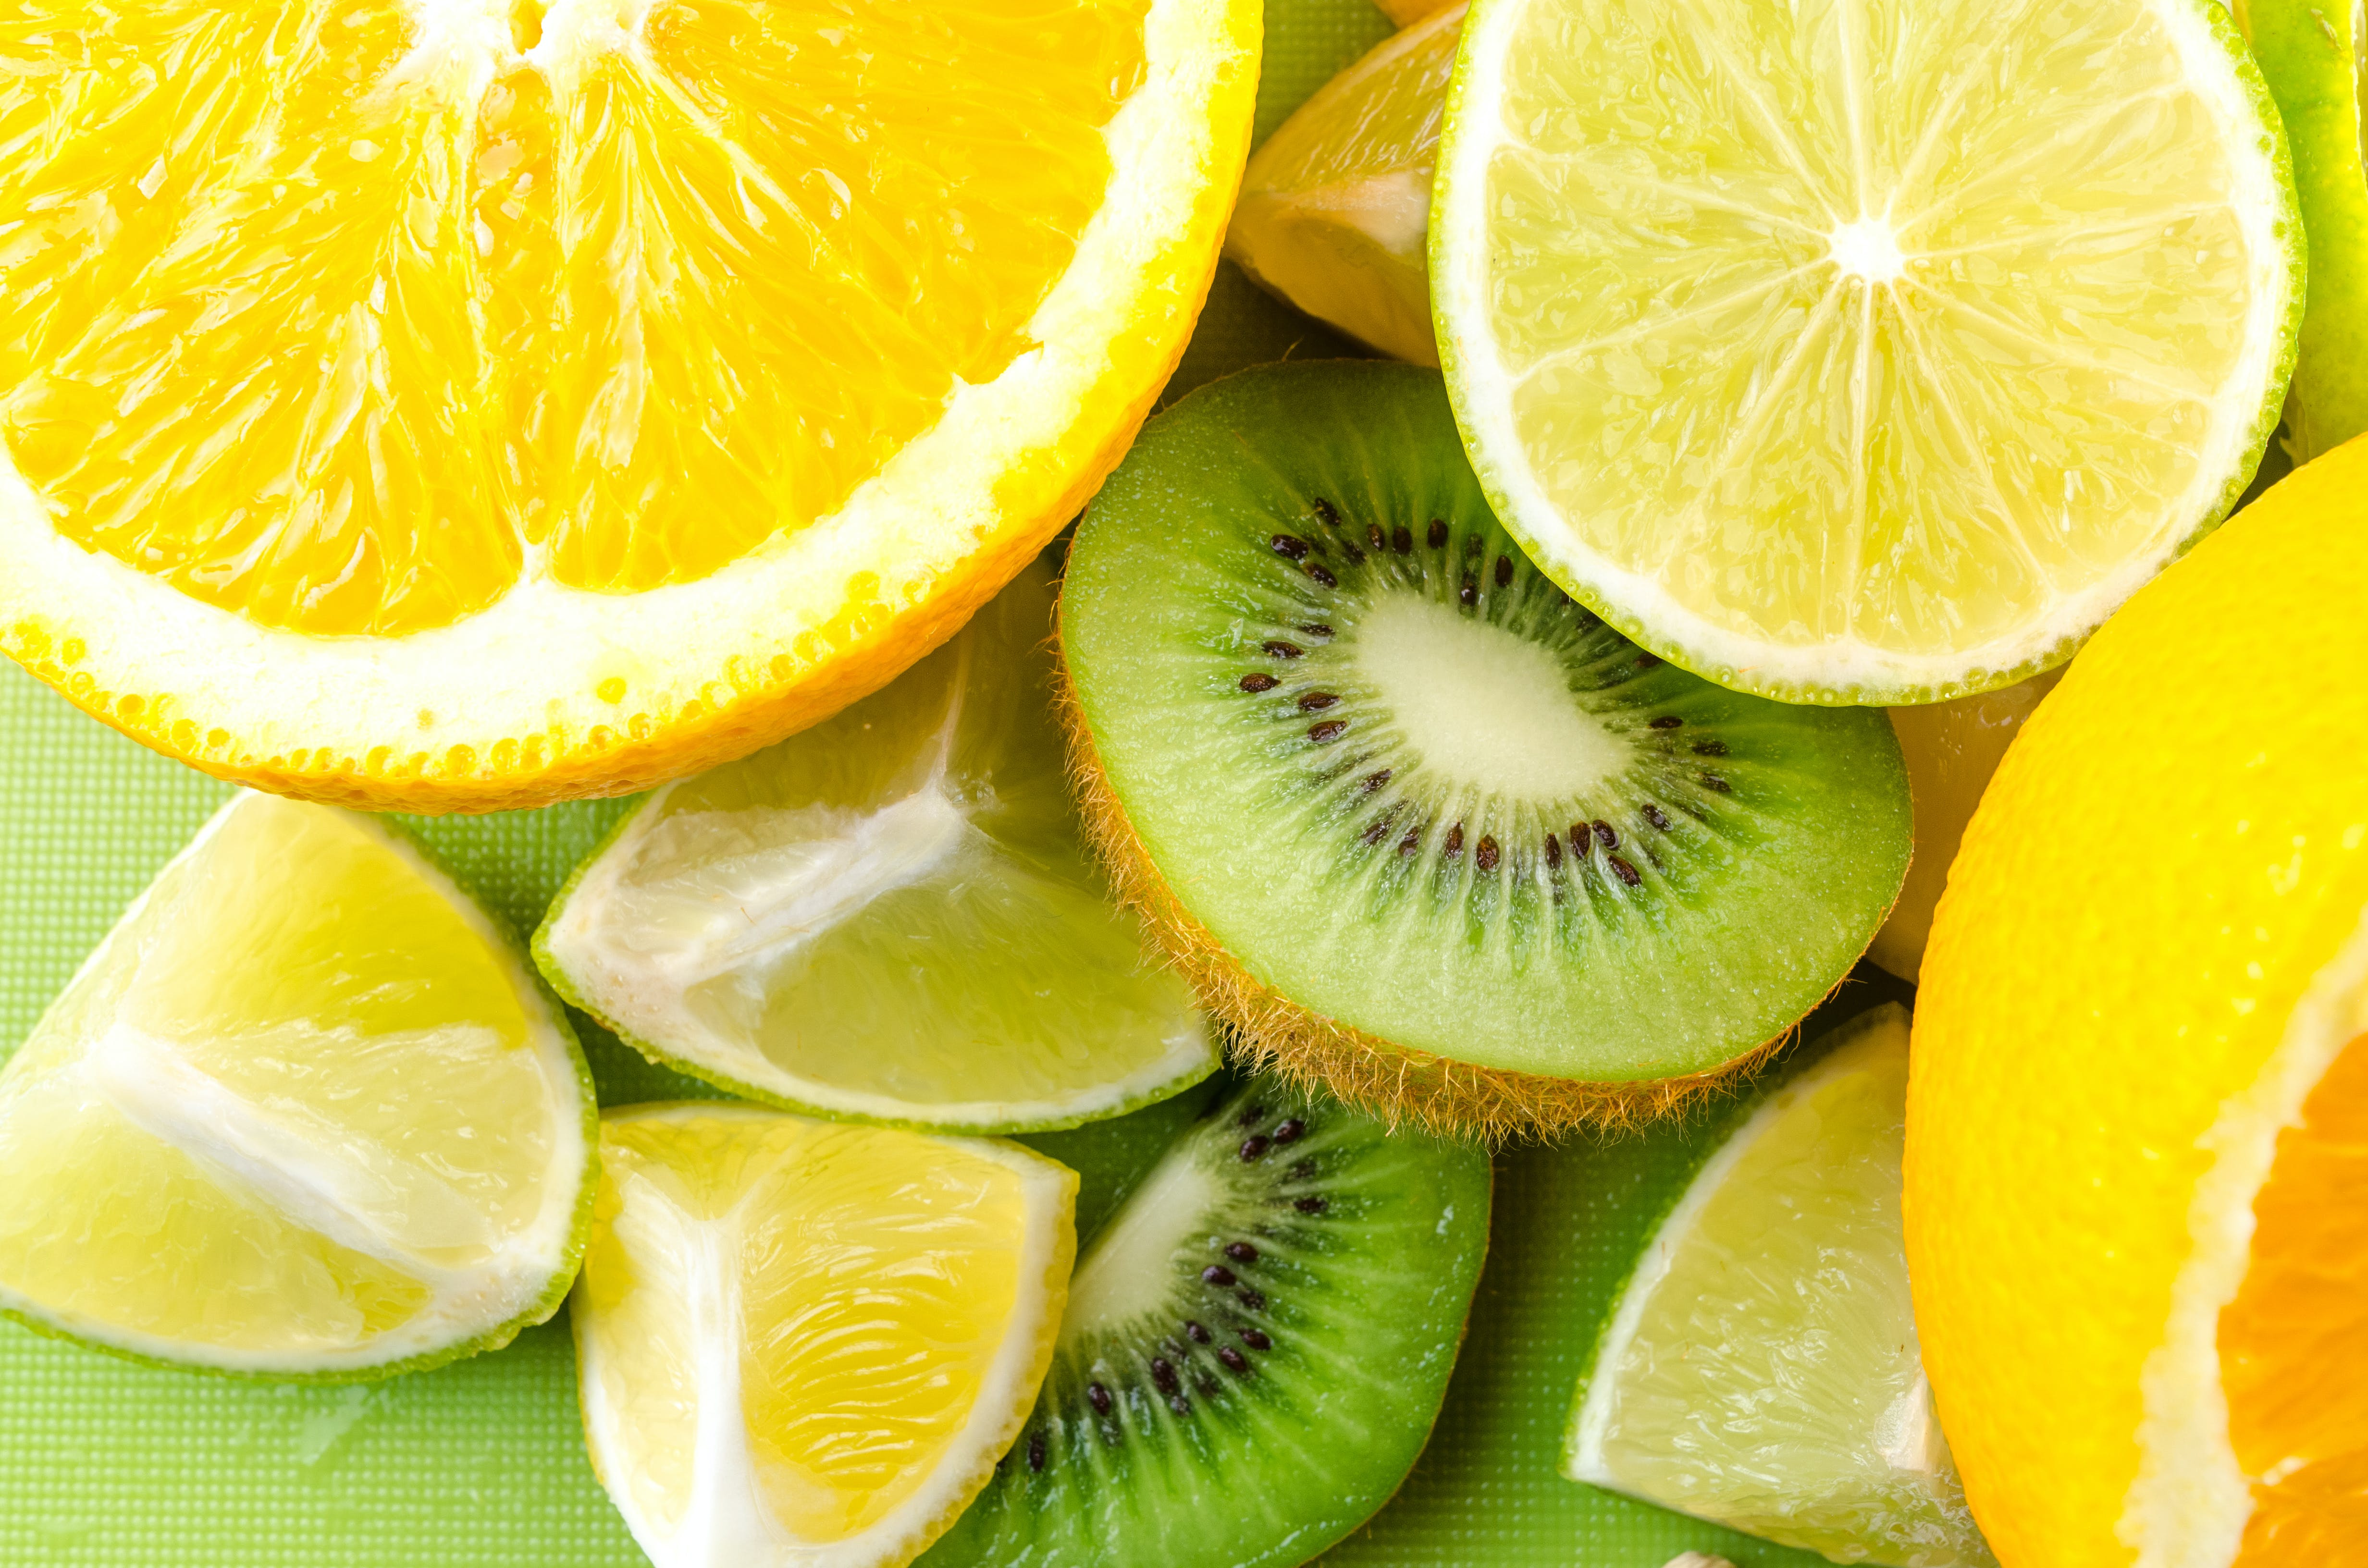 Photo of Sliced Kiwi, Lemon, and Orange Fruits